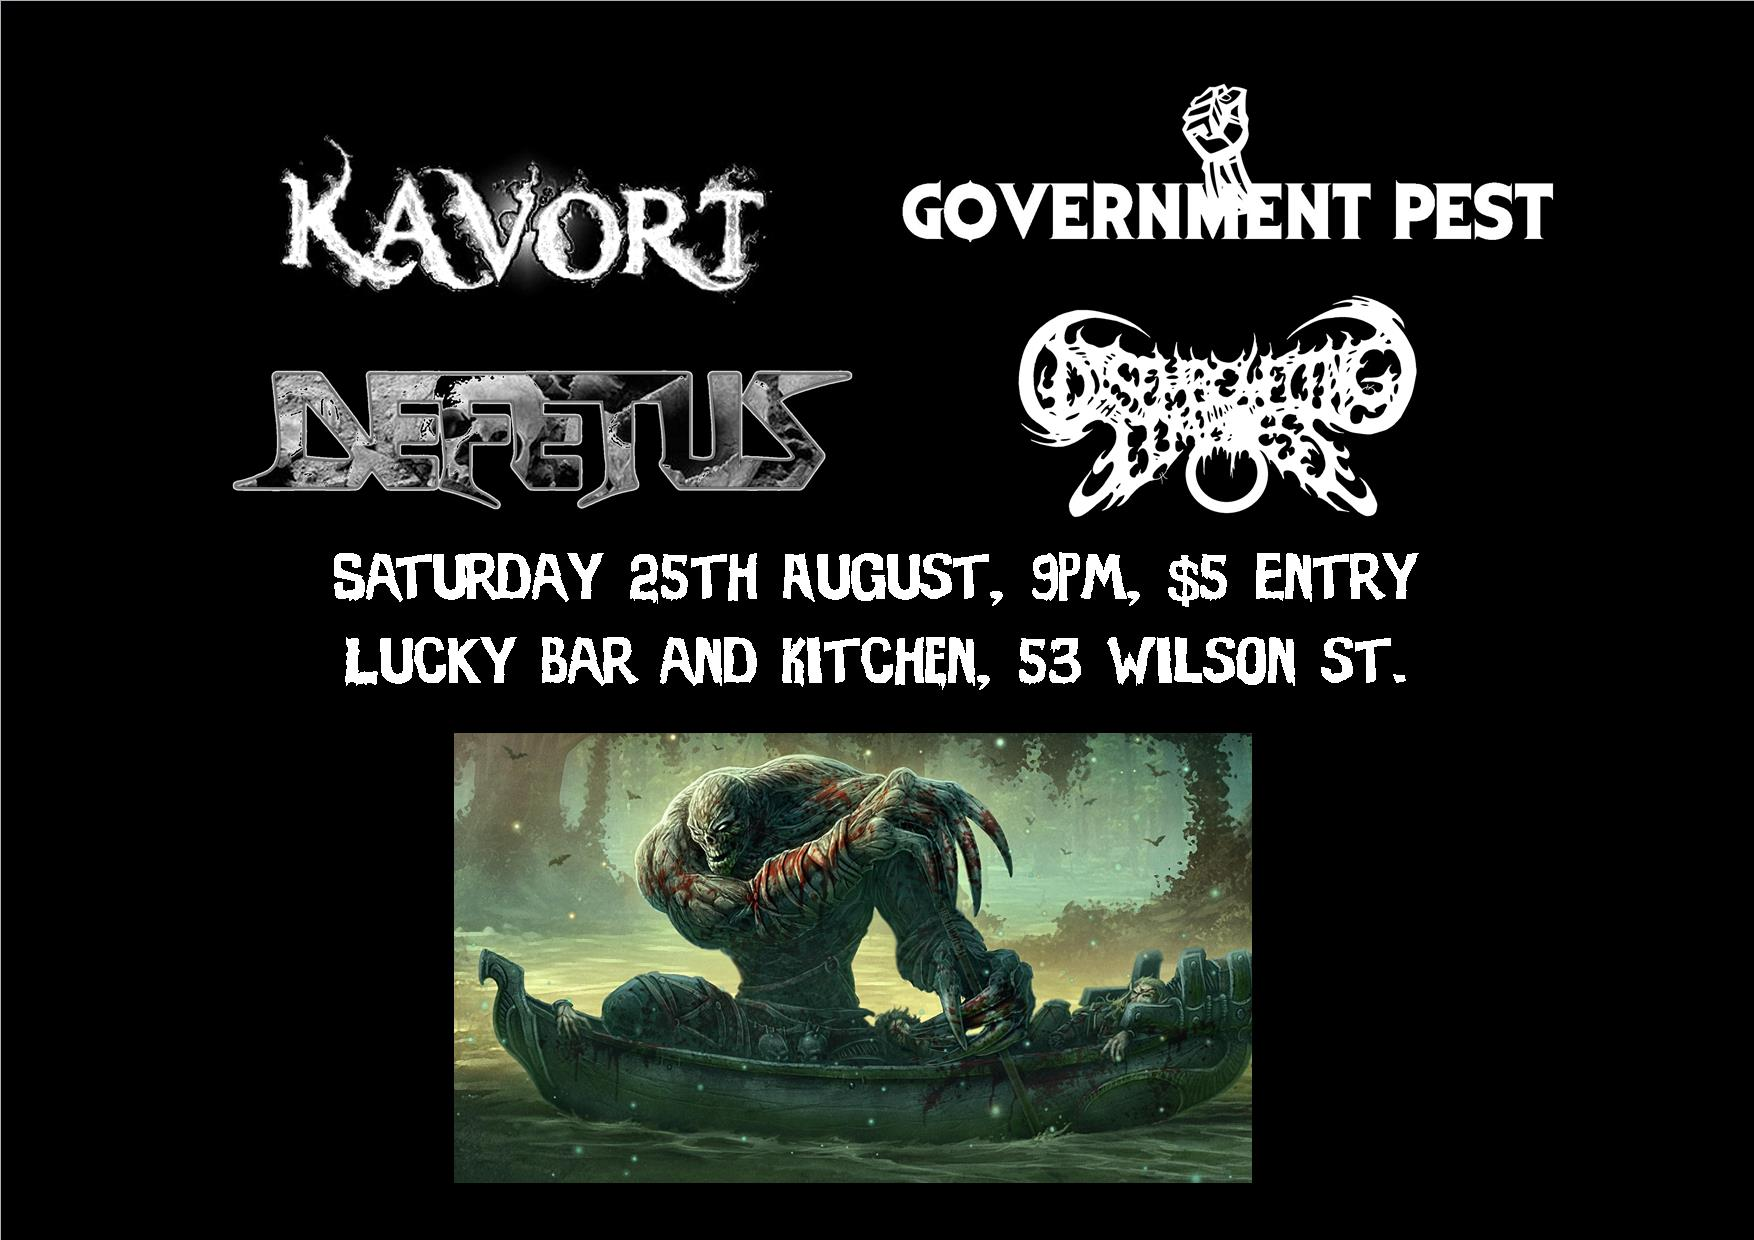 Government Pest, Kavort, Defetus, Disembowelling the limbless